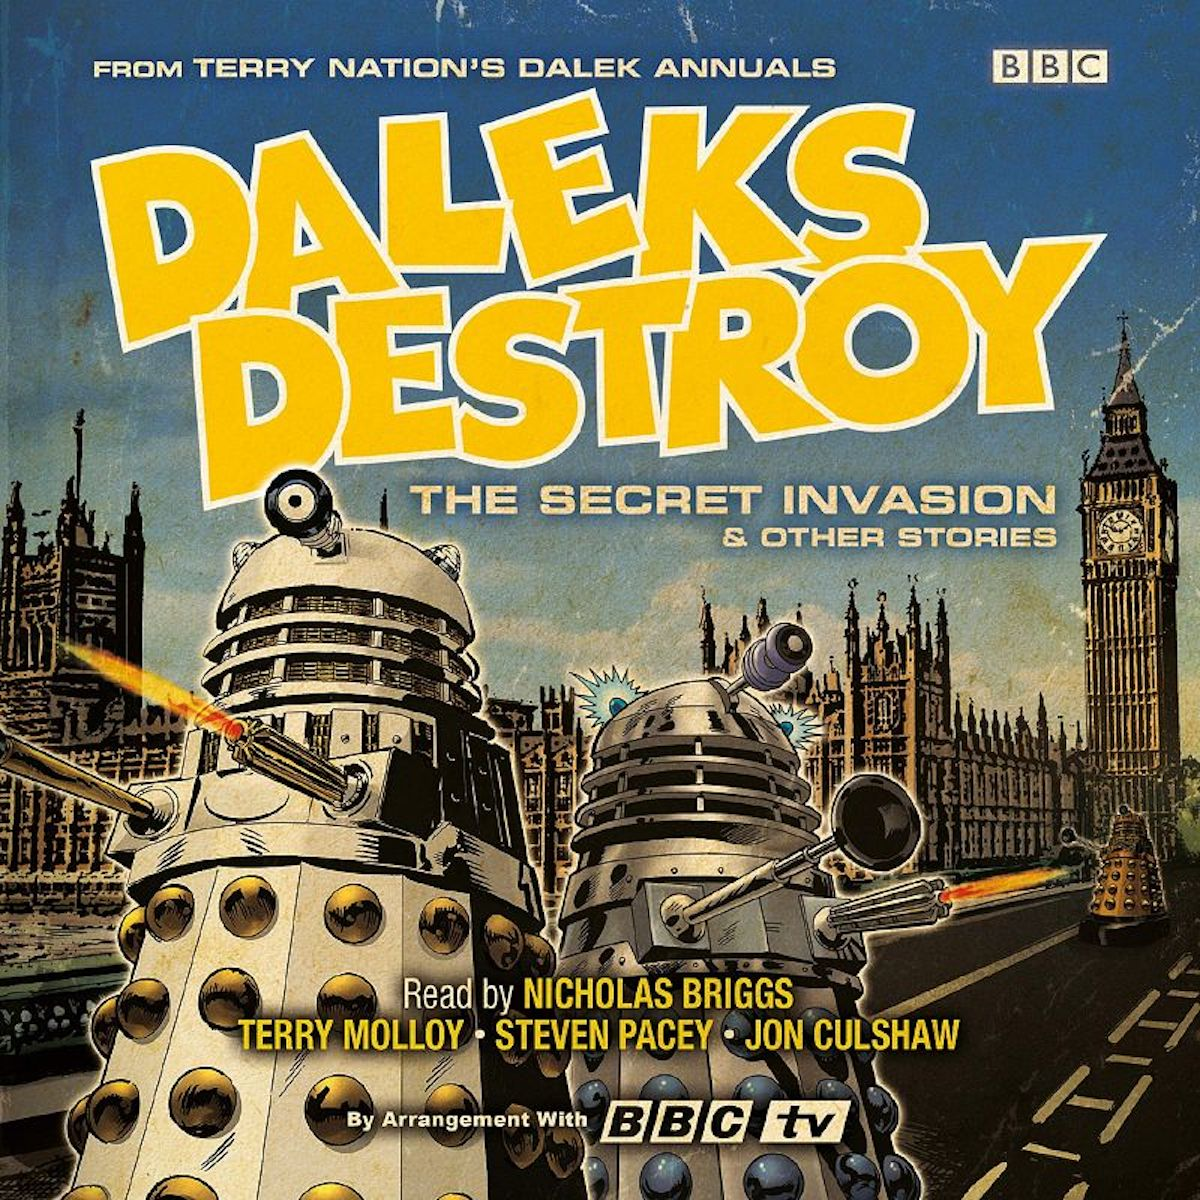 Daleks Destroy: The Secret Invasion & Other Stories